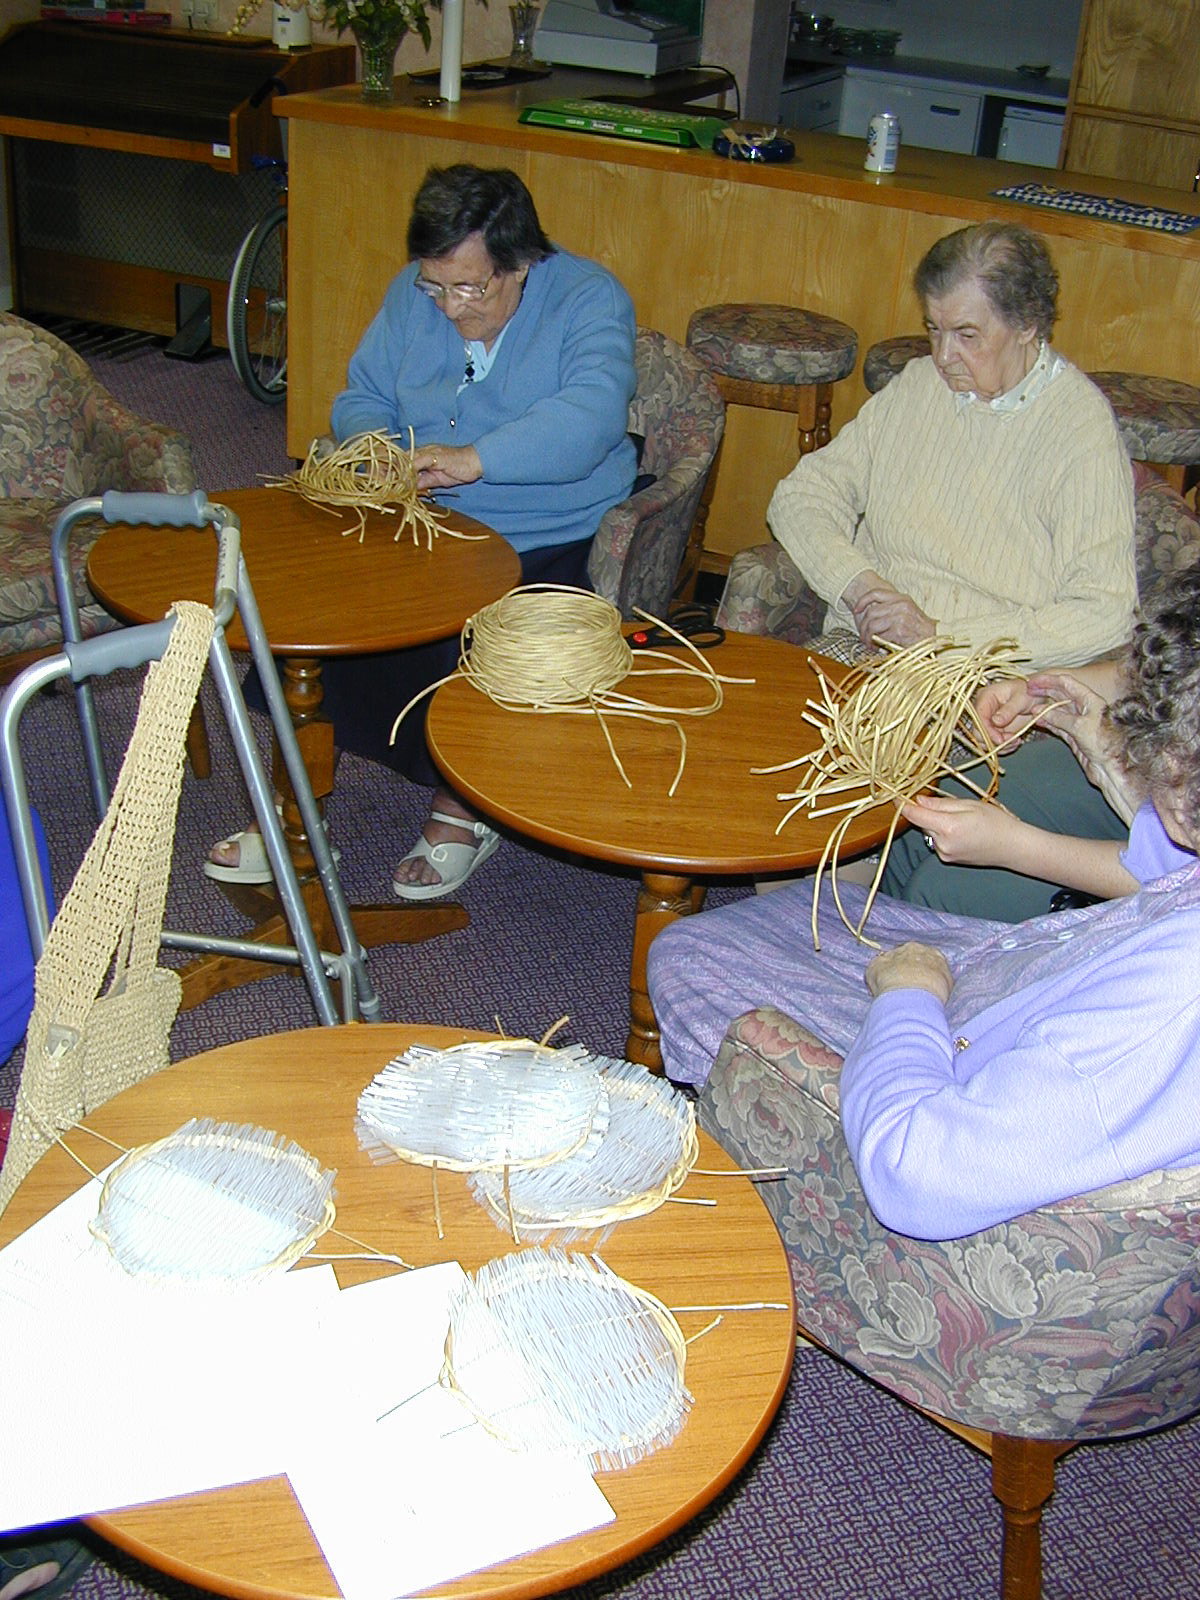 longlands care home, pitt rivers museum basketry project(2)